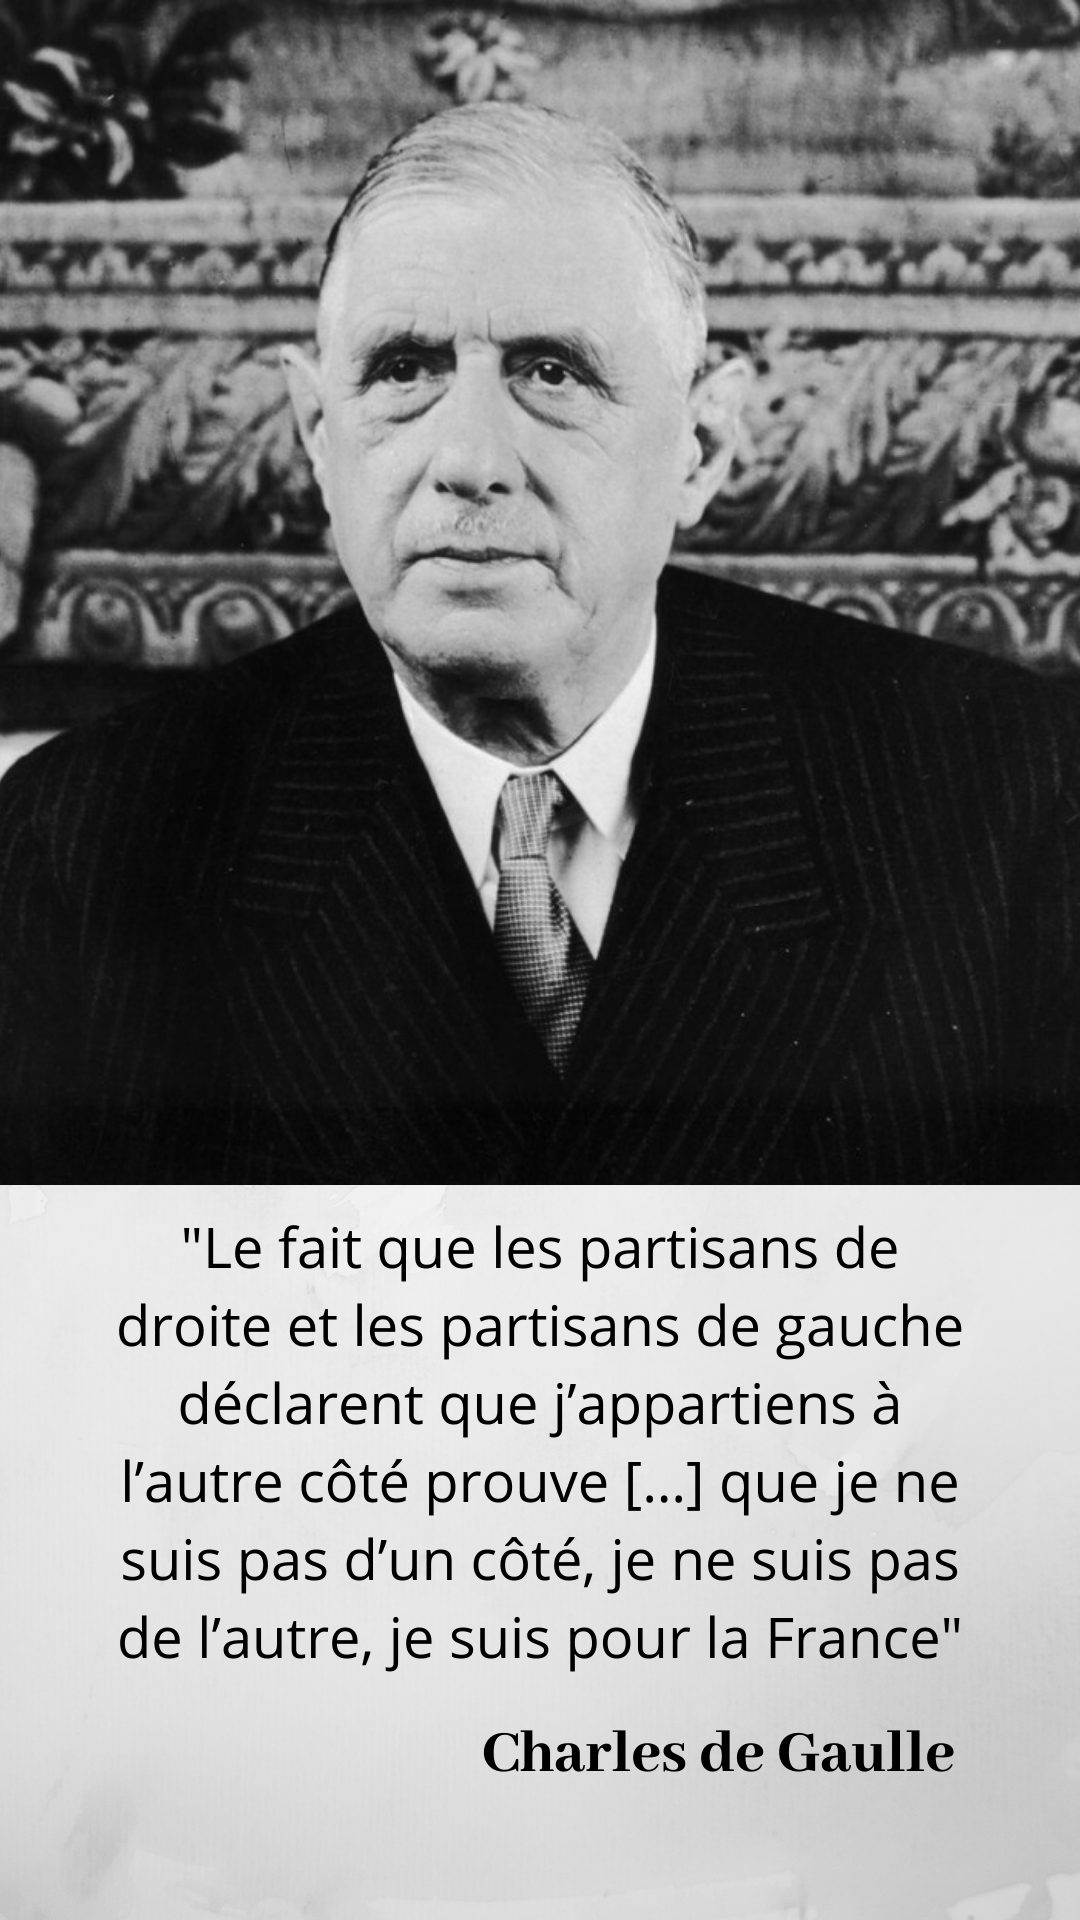 Formule Lapidaire Du General De Gaulle Dans Ses Memoires De Guerre Mais A Qui L Emprunte T Il Citation Politique Citations Politiques Citation De Gaulle